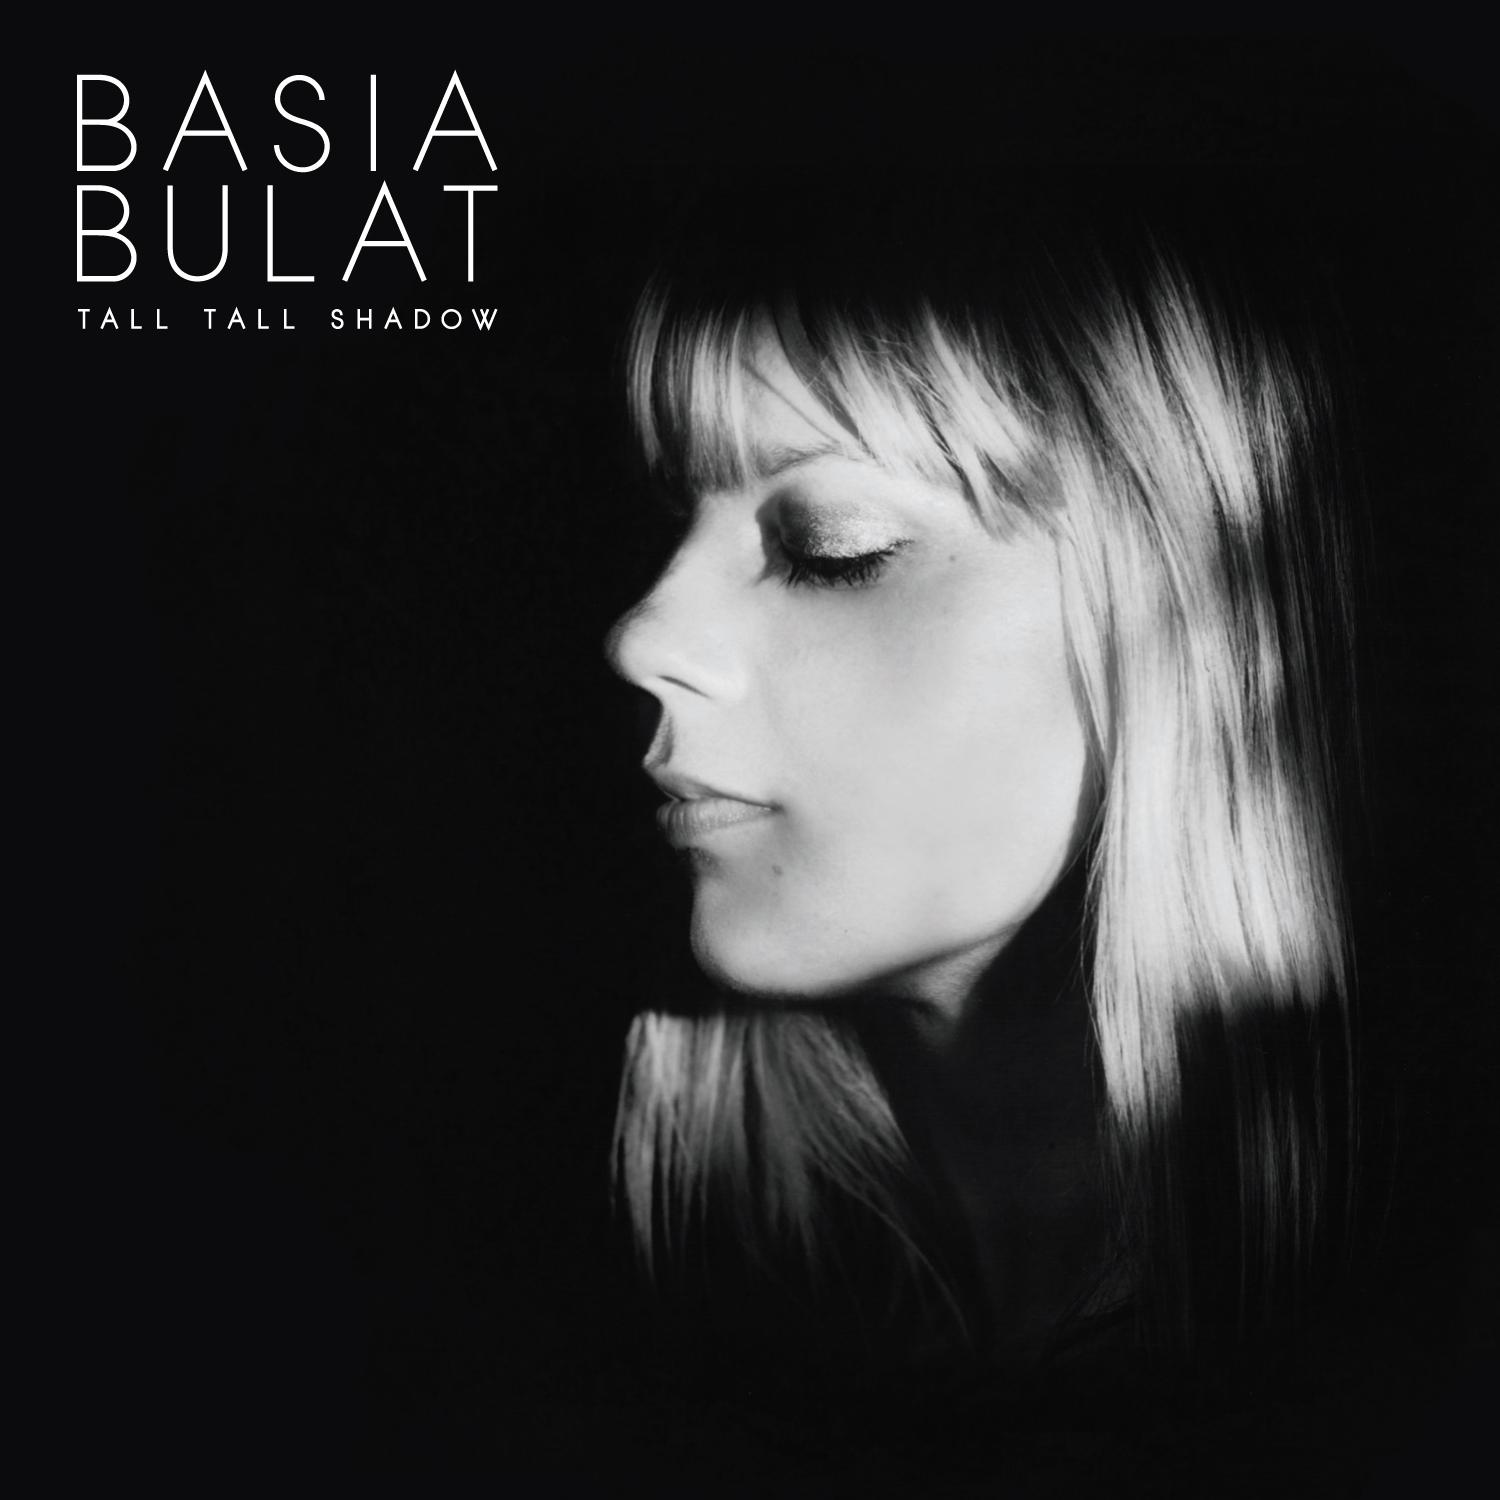 Basia Bulat - Tall Tall Shadow (2013) [MULTI]